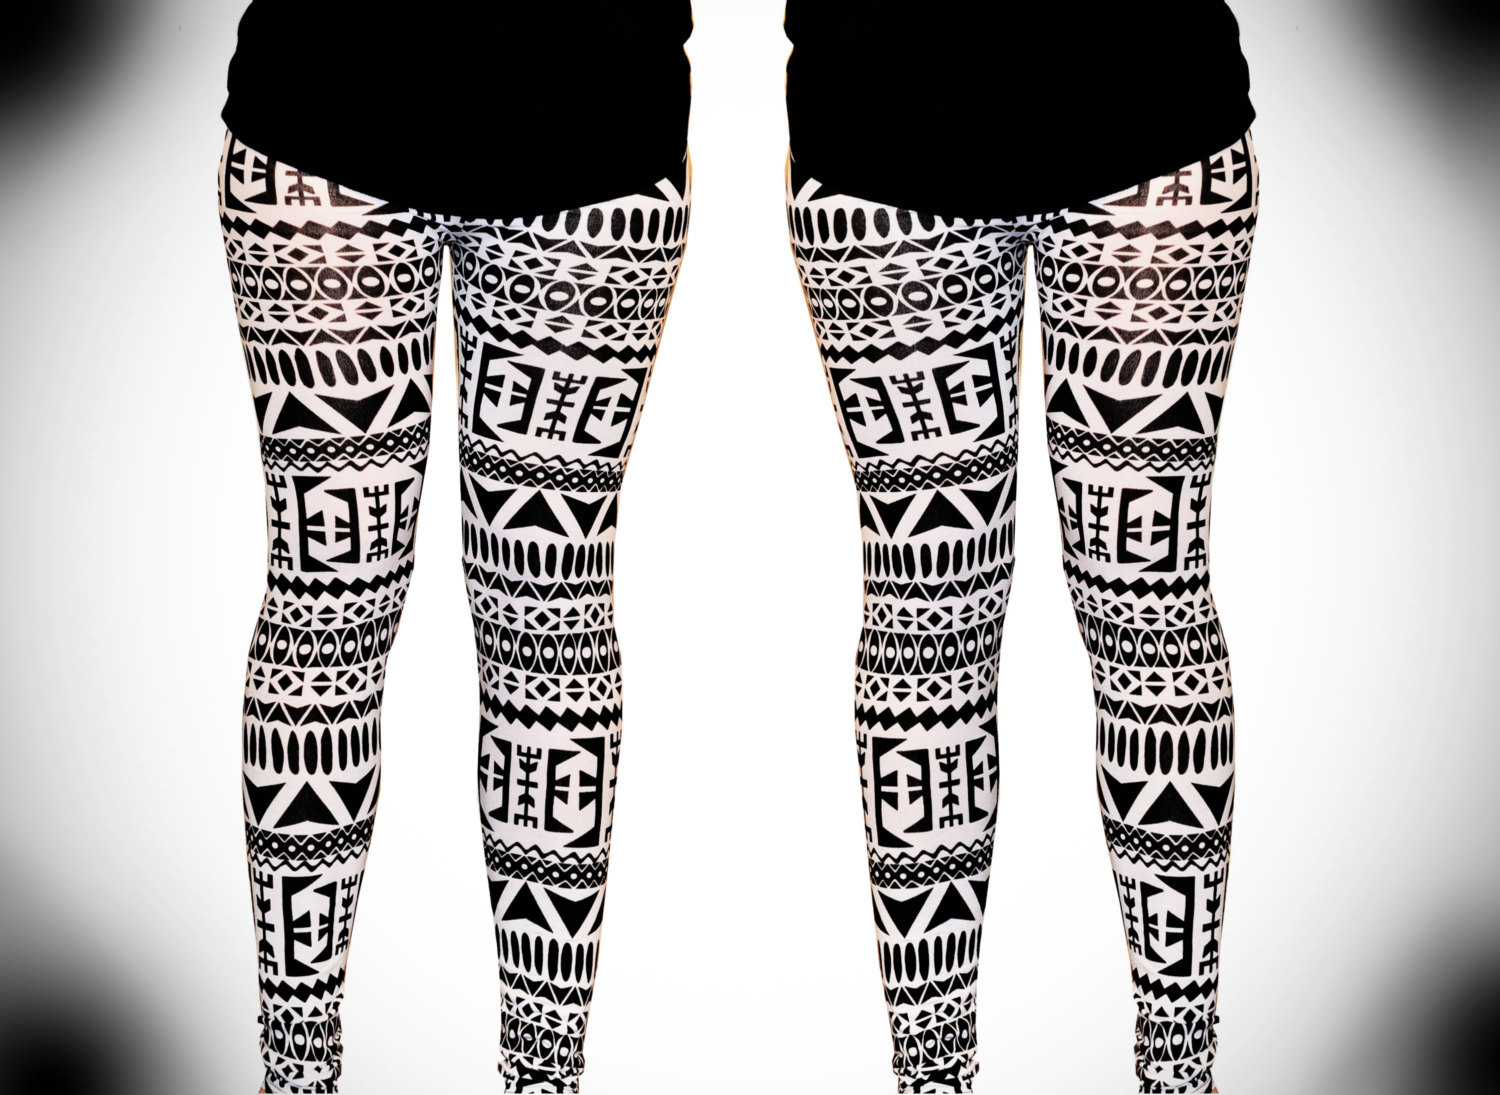 17 Best ideas about Black And White Tights on Pinterest | Black ...